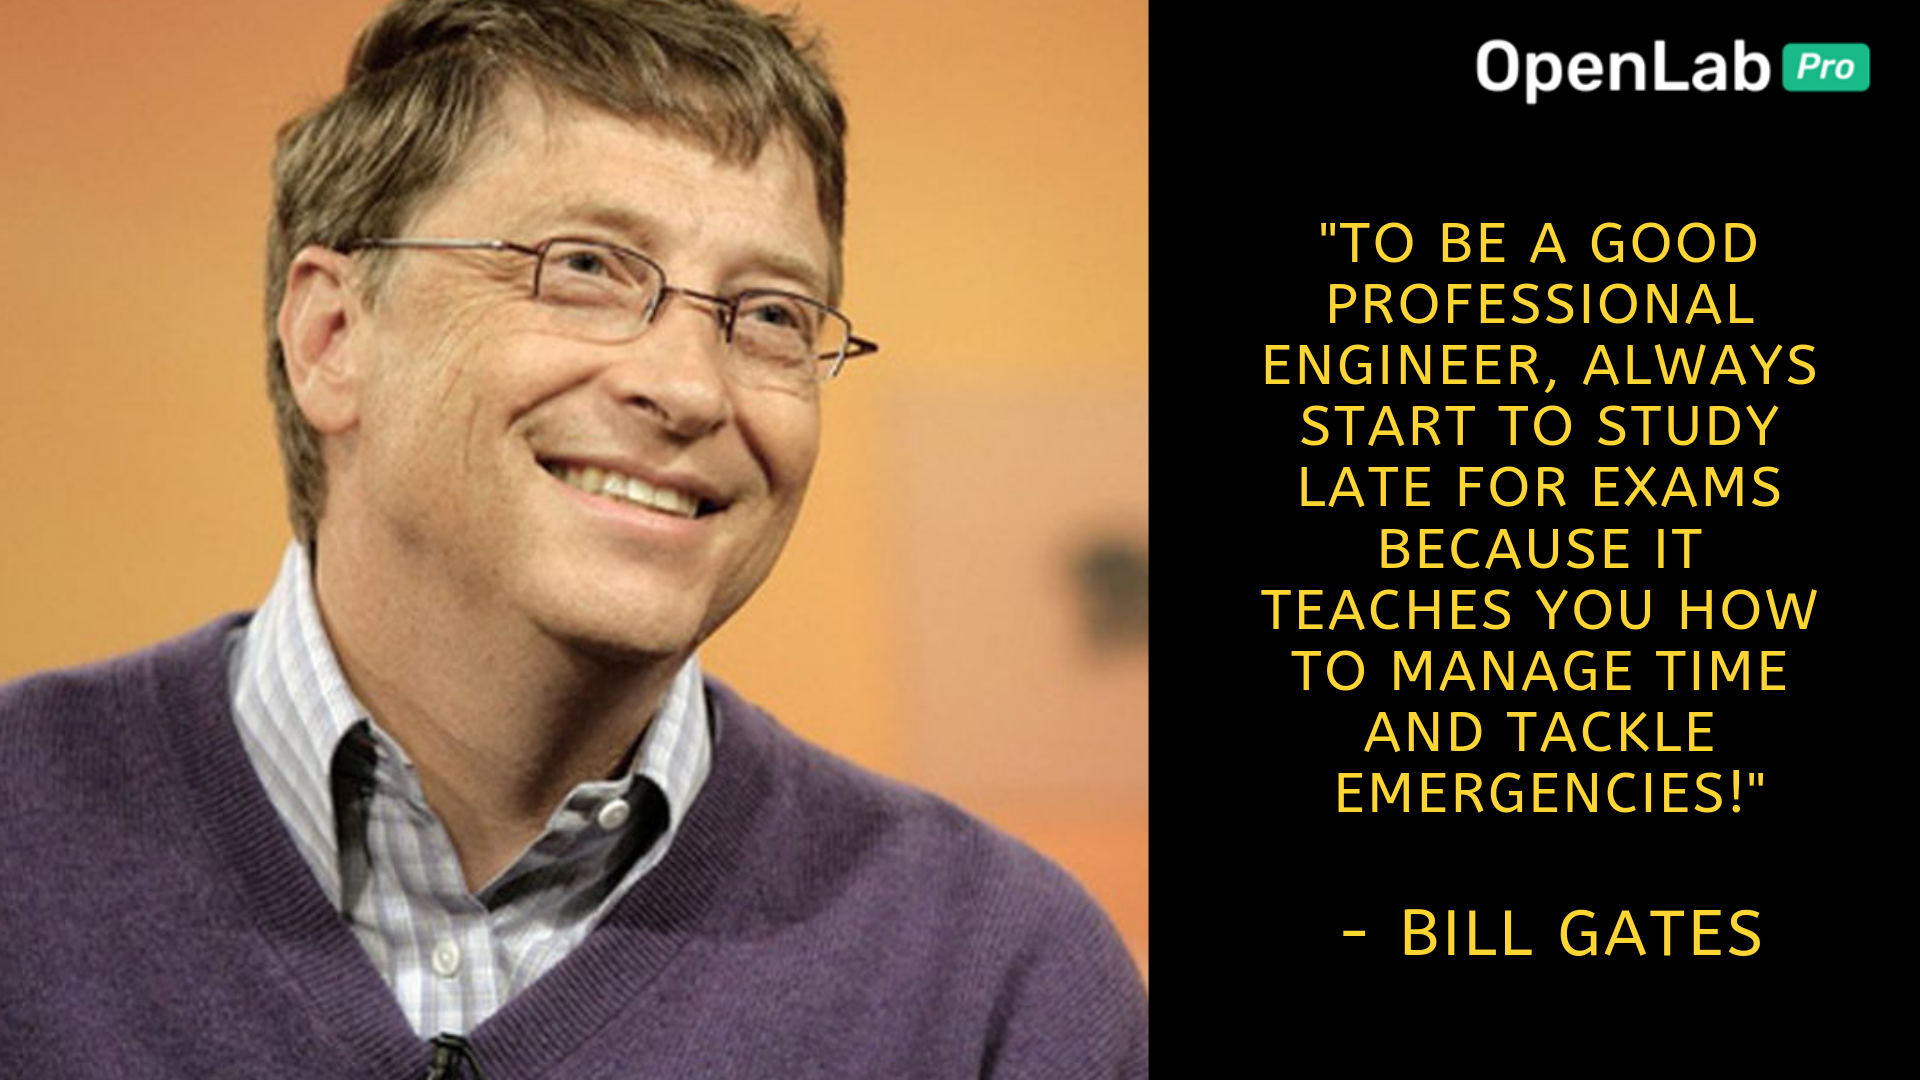 Even The Bill Gates Said If You Want To Be A Good Professional Engineer Always Start Studying Late For Exams As Th Professional Engineer Teaching Engineering